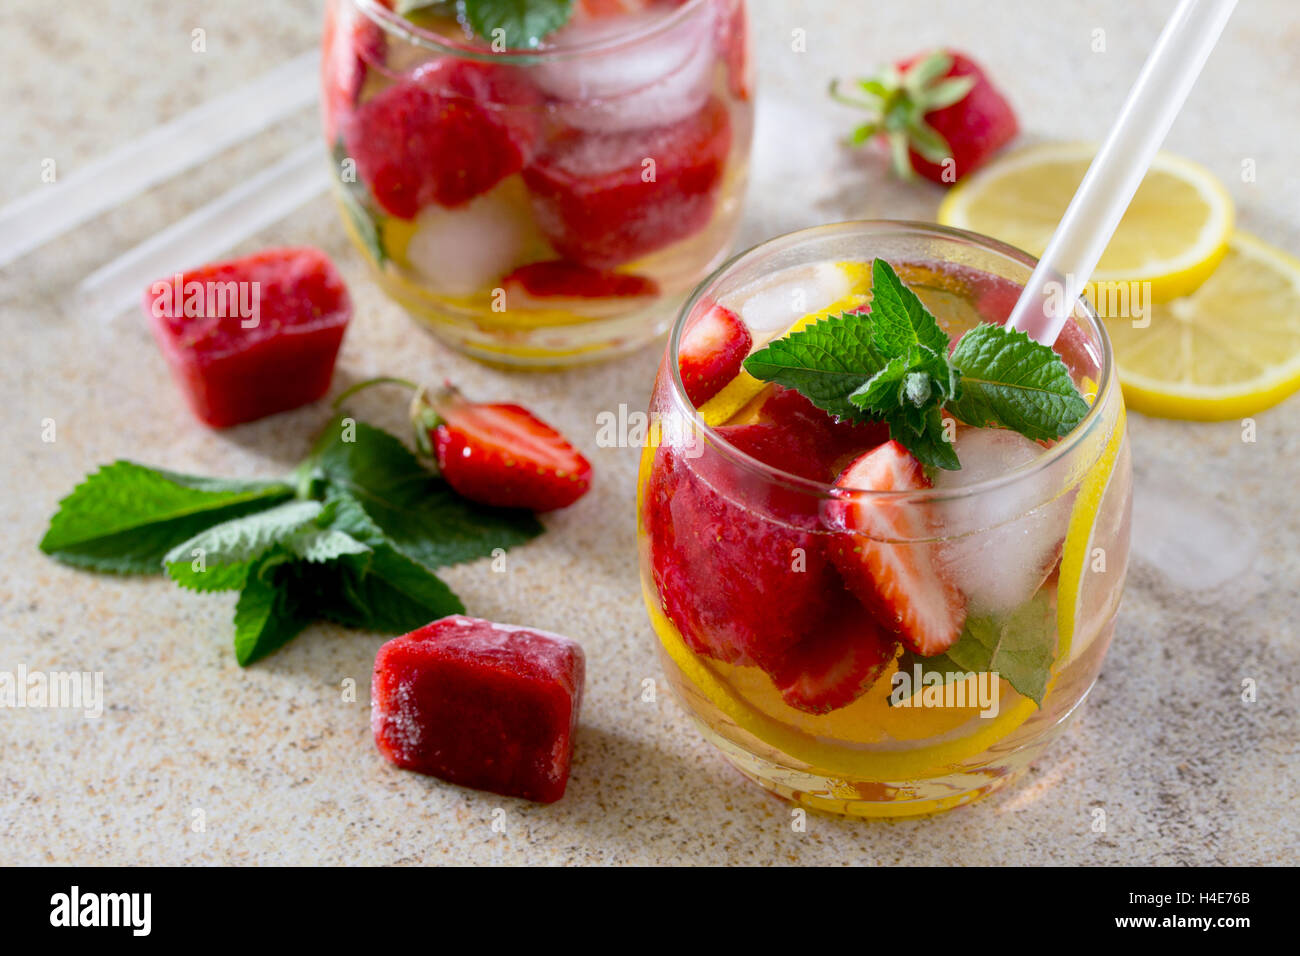 Tradition Summer mojito drink with lemon and mint with copy space on brown stone background. - Stock Image